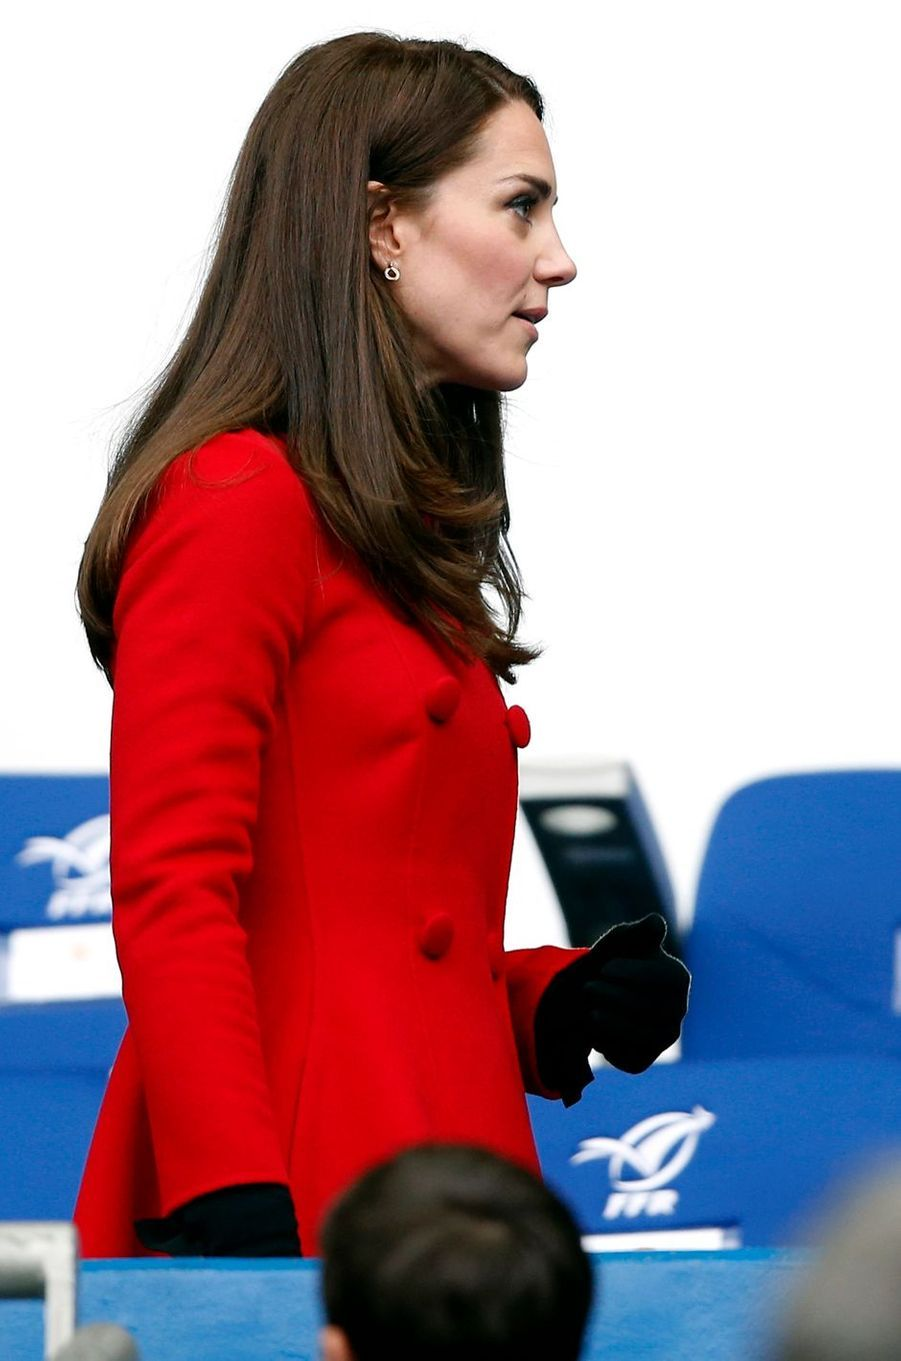 La duchesse de Cambridge, née Kate Middleton, en Carolina Herrera à Paris le 18 mars 2017